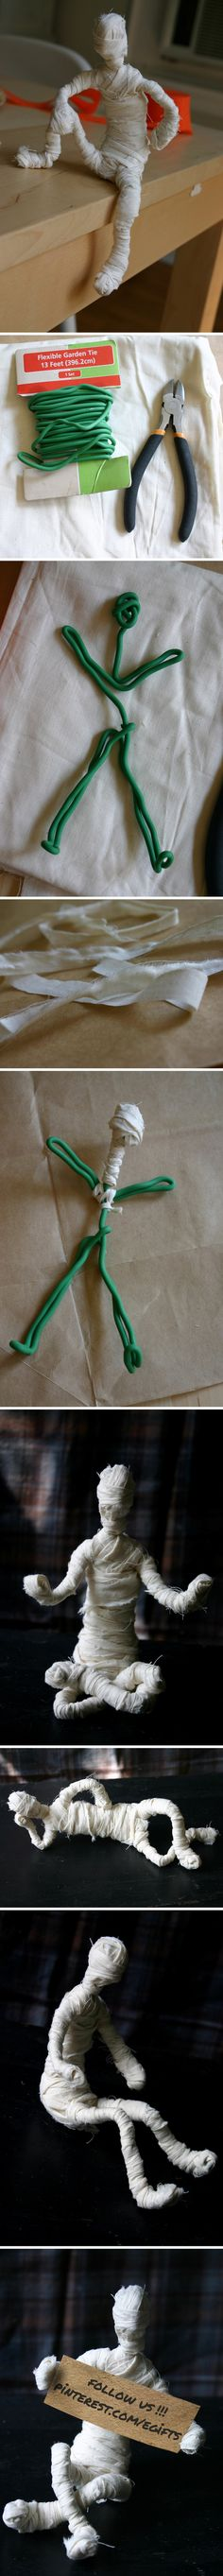 "Movable Mummies -Original Pinner said: ""I like to come up with funny & original Halloween crafts for my kids – this project is super easy and perfect if you're looking for a party activity. Like the Elf on the shelf, but the Mummy at Halloween! Theme Halloween, Halloween Prop, Diy Halloween Decorations, Holidays Halloween, Halloween Crafts, Christmas Costumes, Asylum Halloween, Paper Halloween, Halloween Clothes"